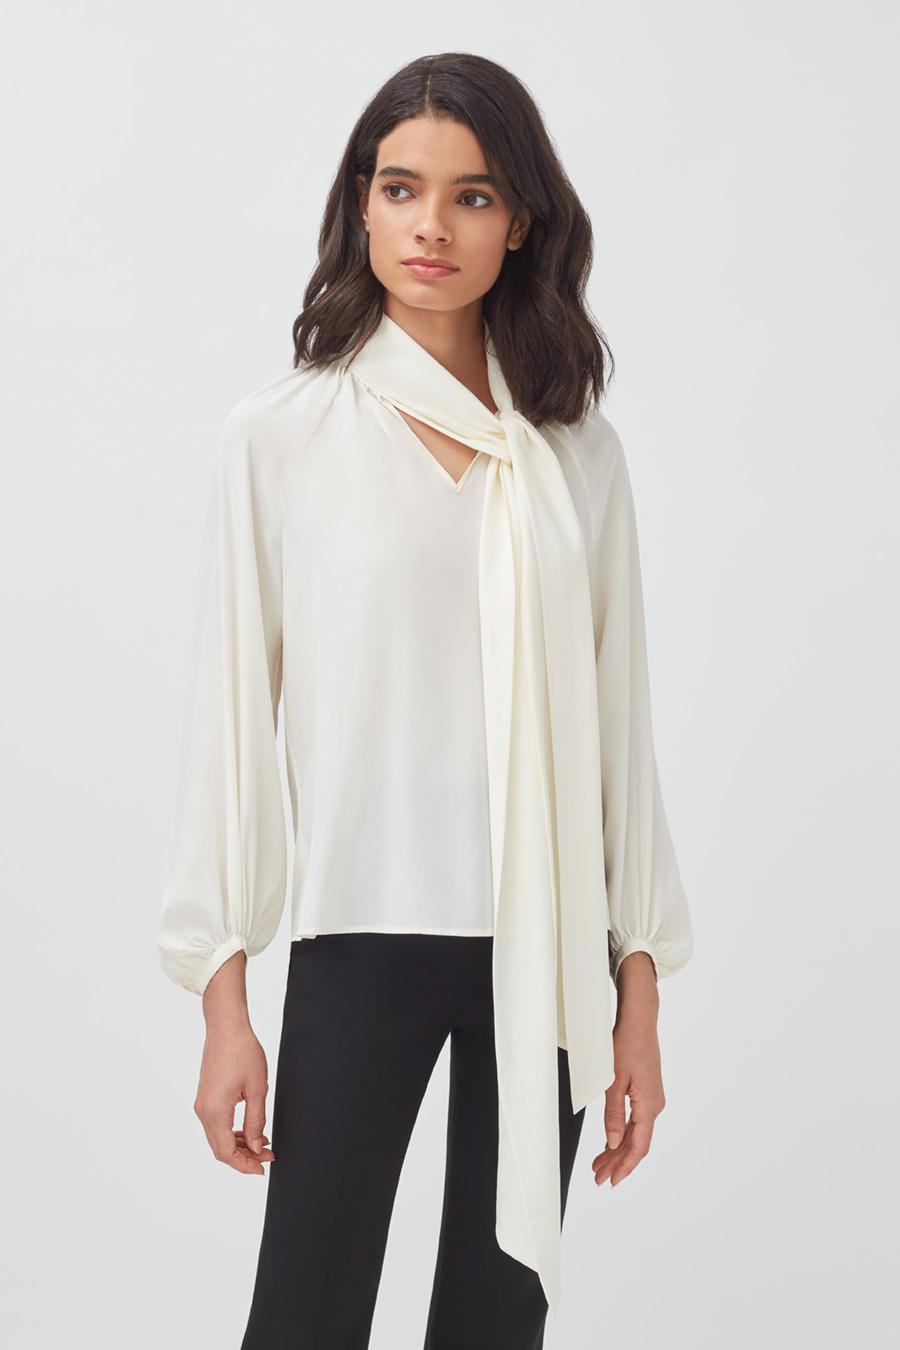 Women's Silk Bow Blouse in White | Size: 1